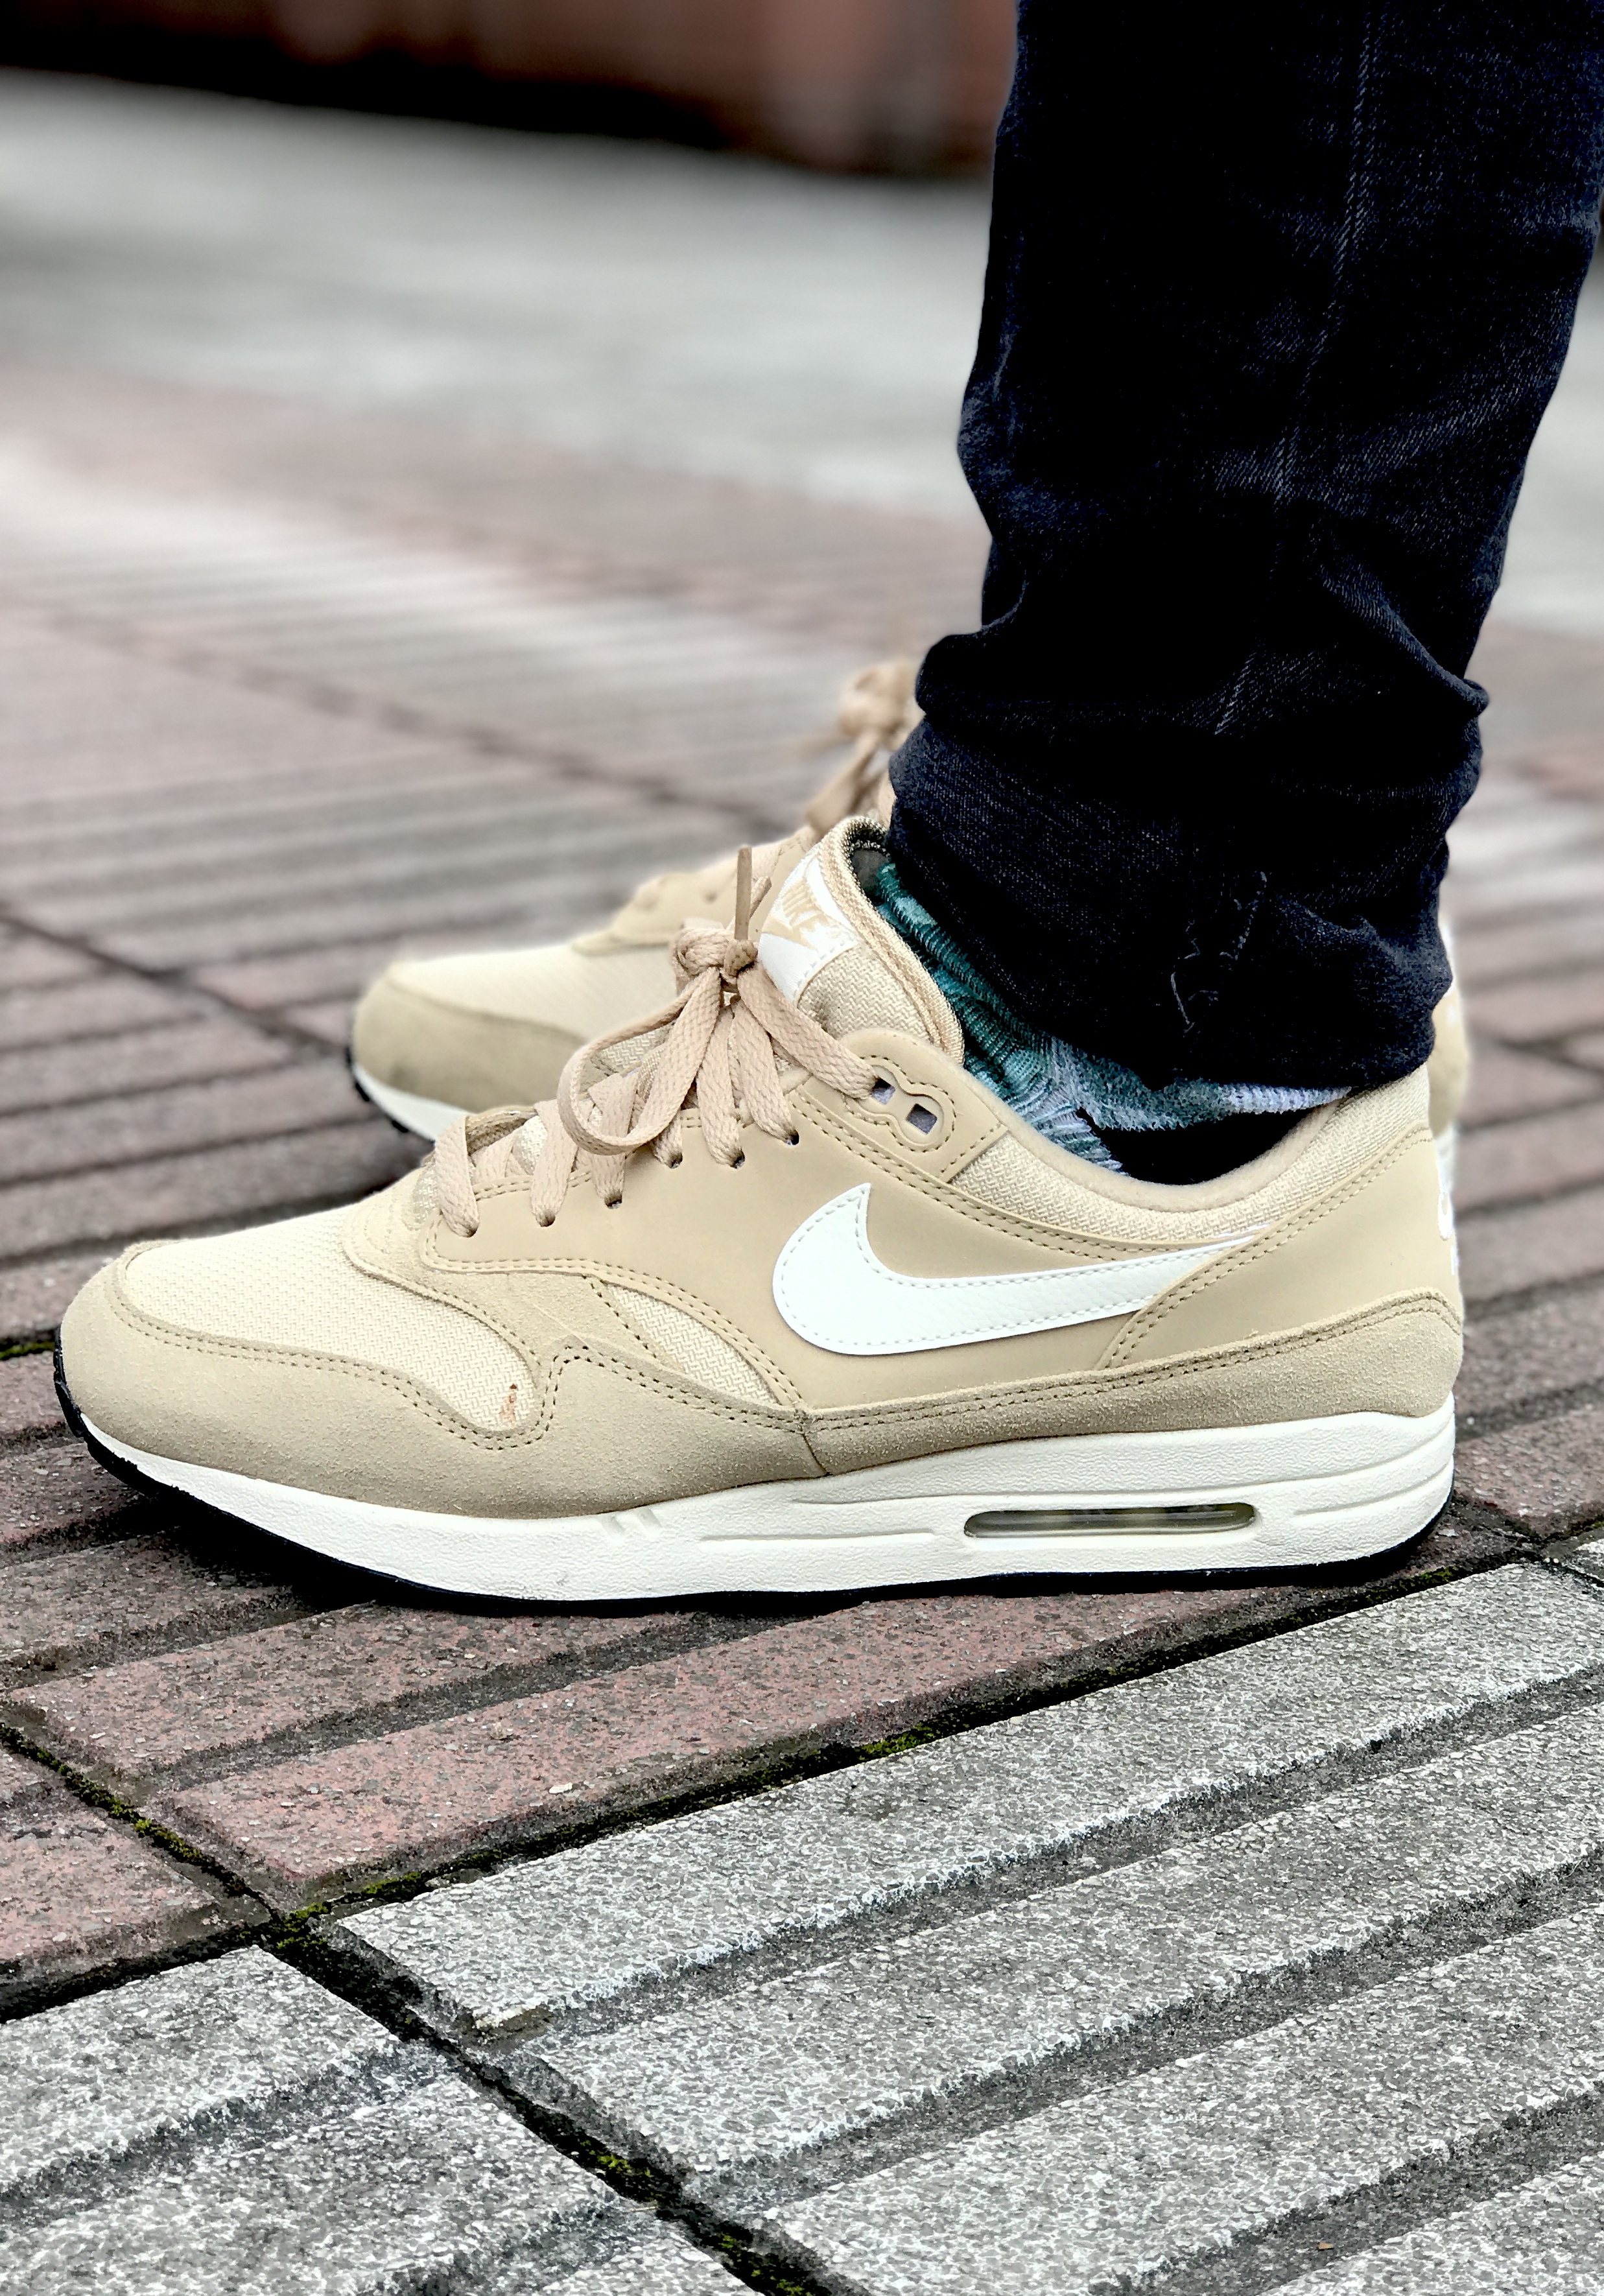 Nike Air Max One – Sneakers and Zapas